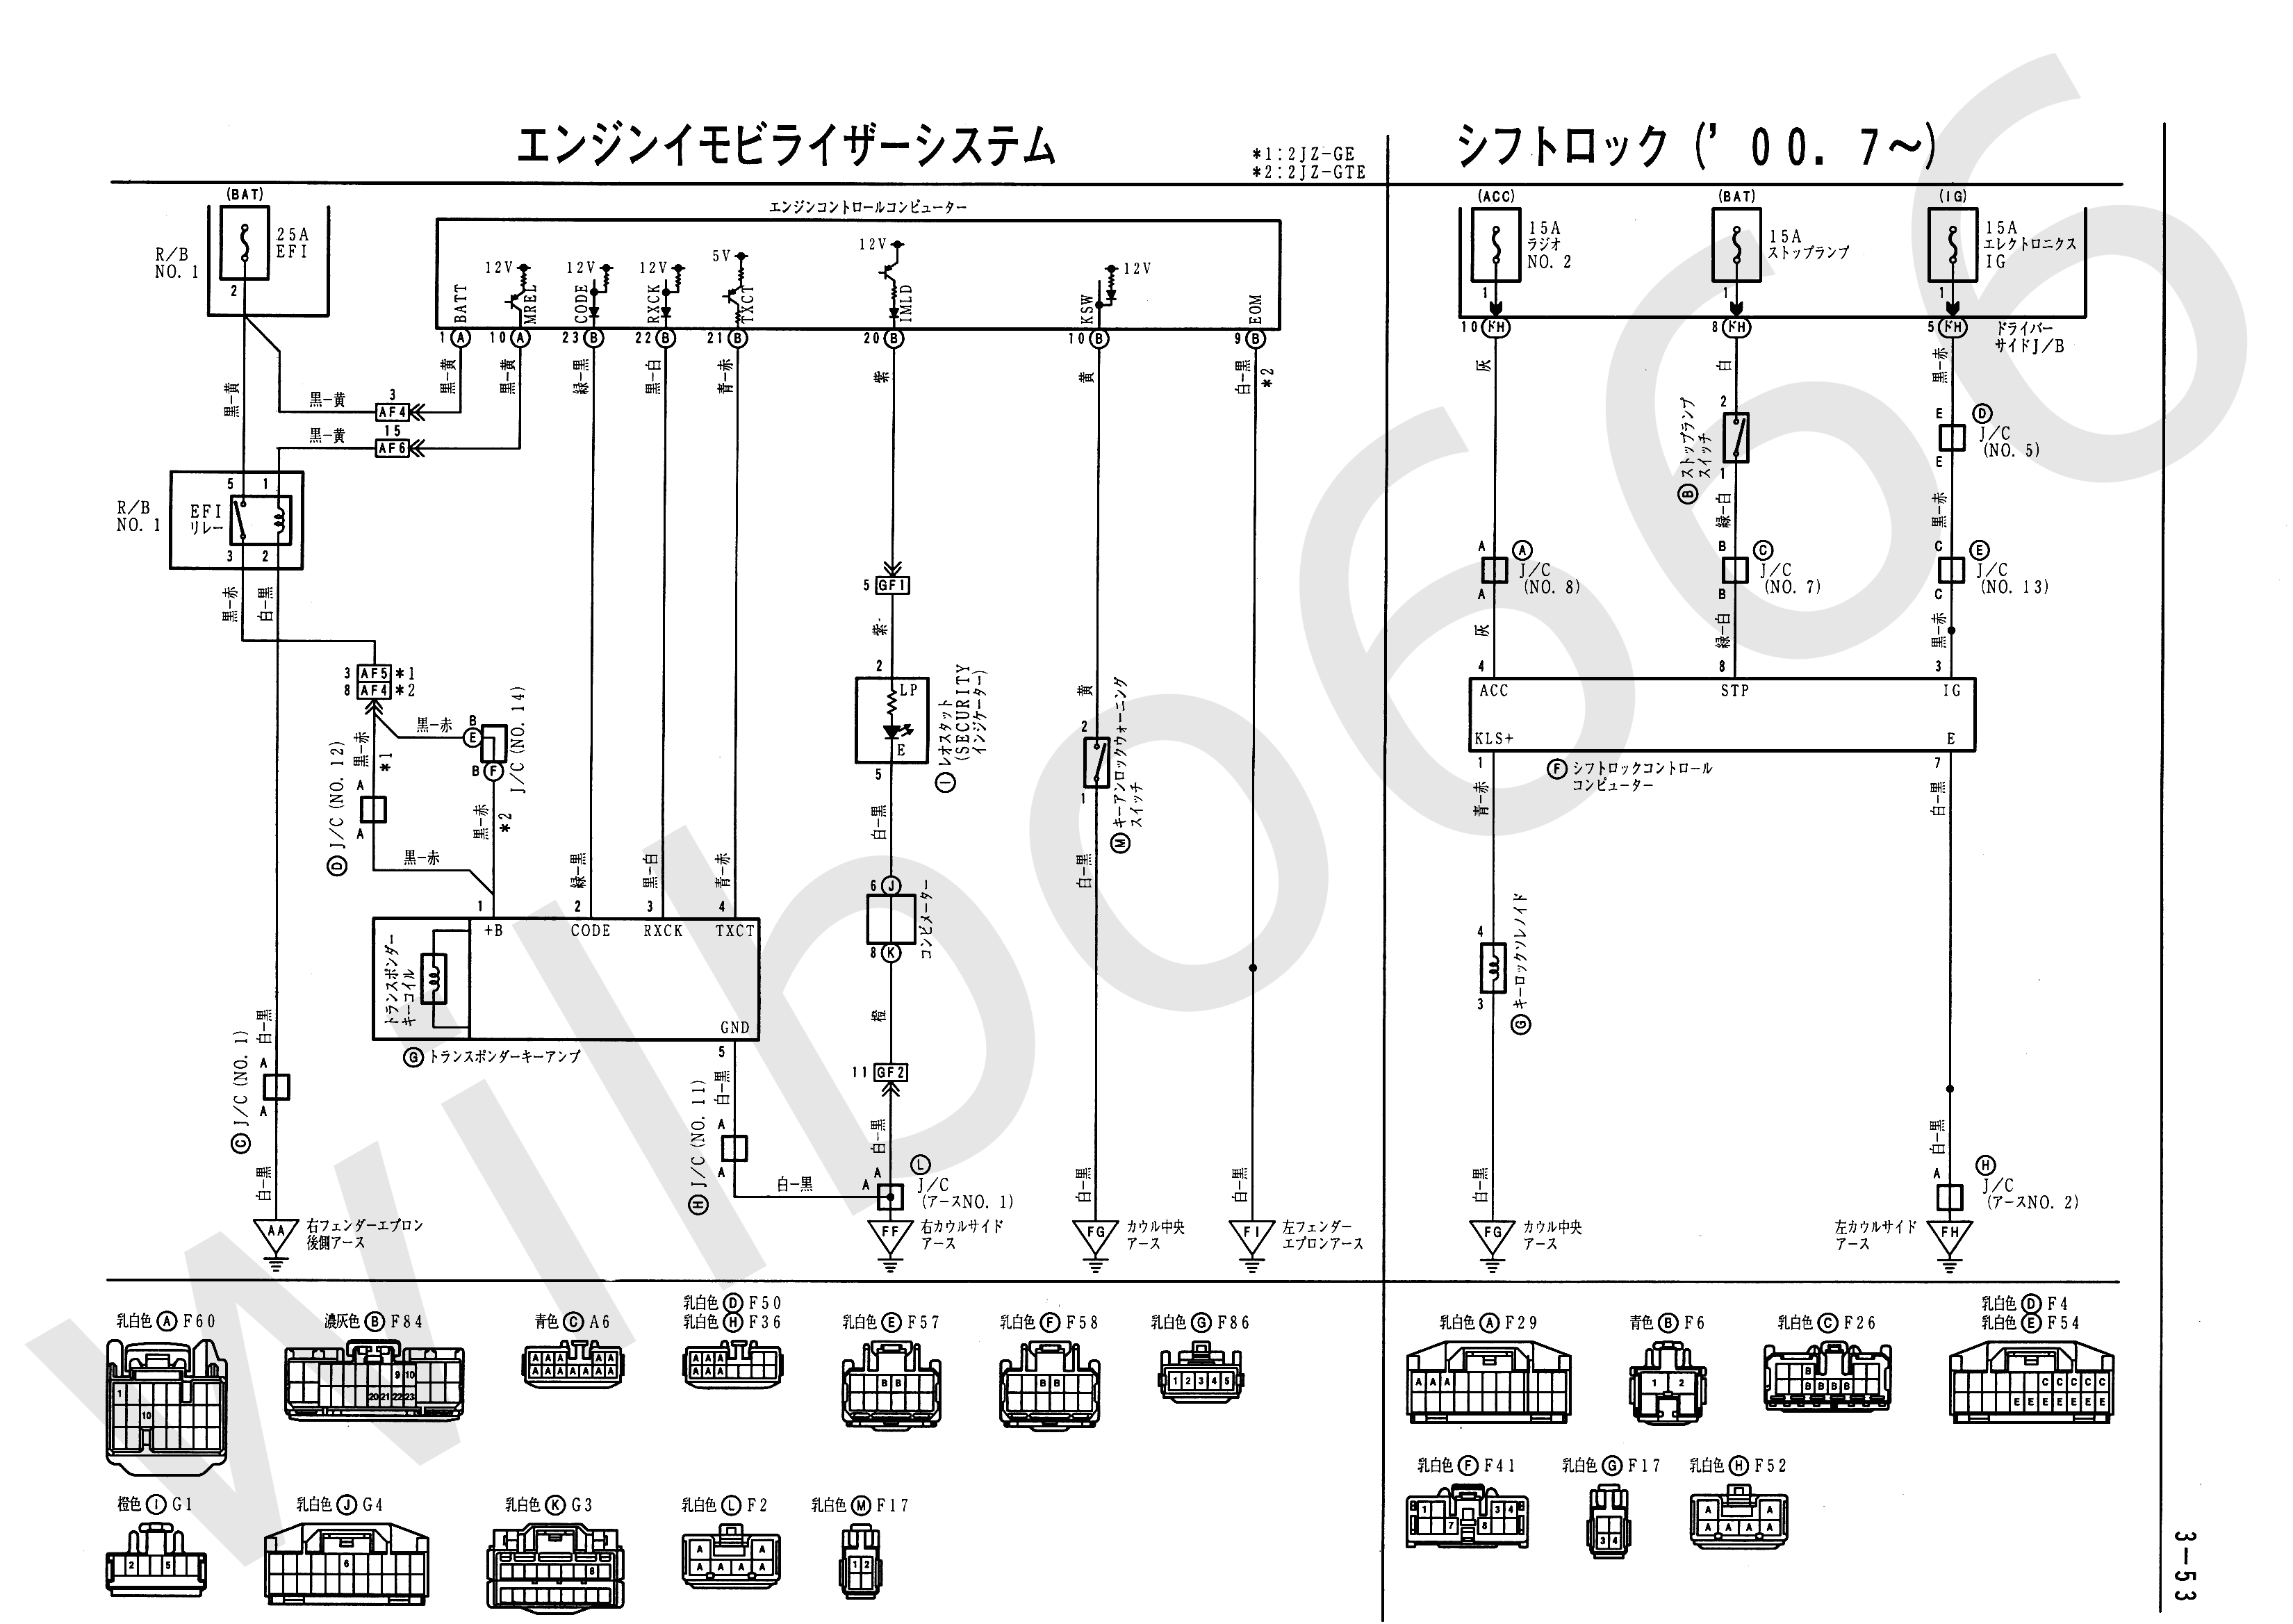 JZS161 Electrical Wiring Diagram 6748505 3 53 wilbo666 2jz gte vvti jzs161 aristo engine wiring TPS Adapter Wire at eliteediting.co